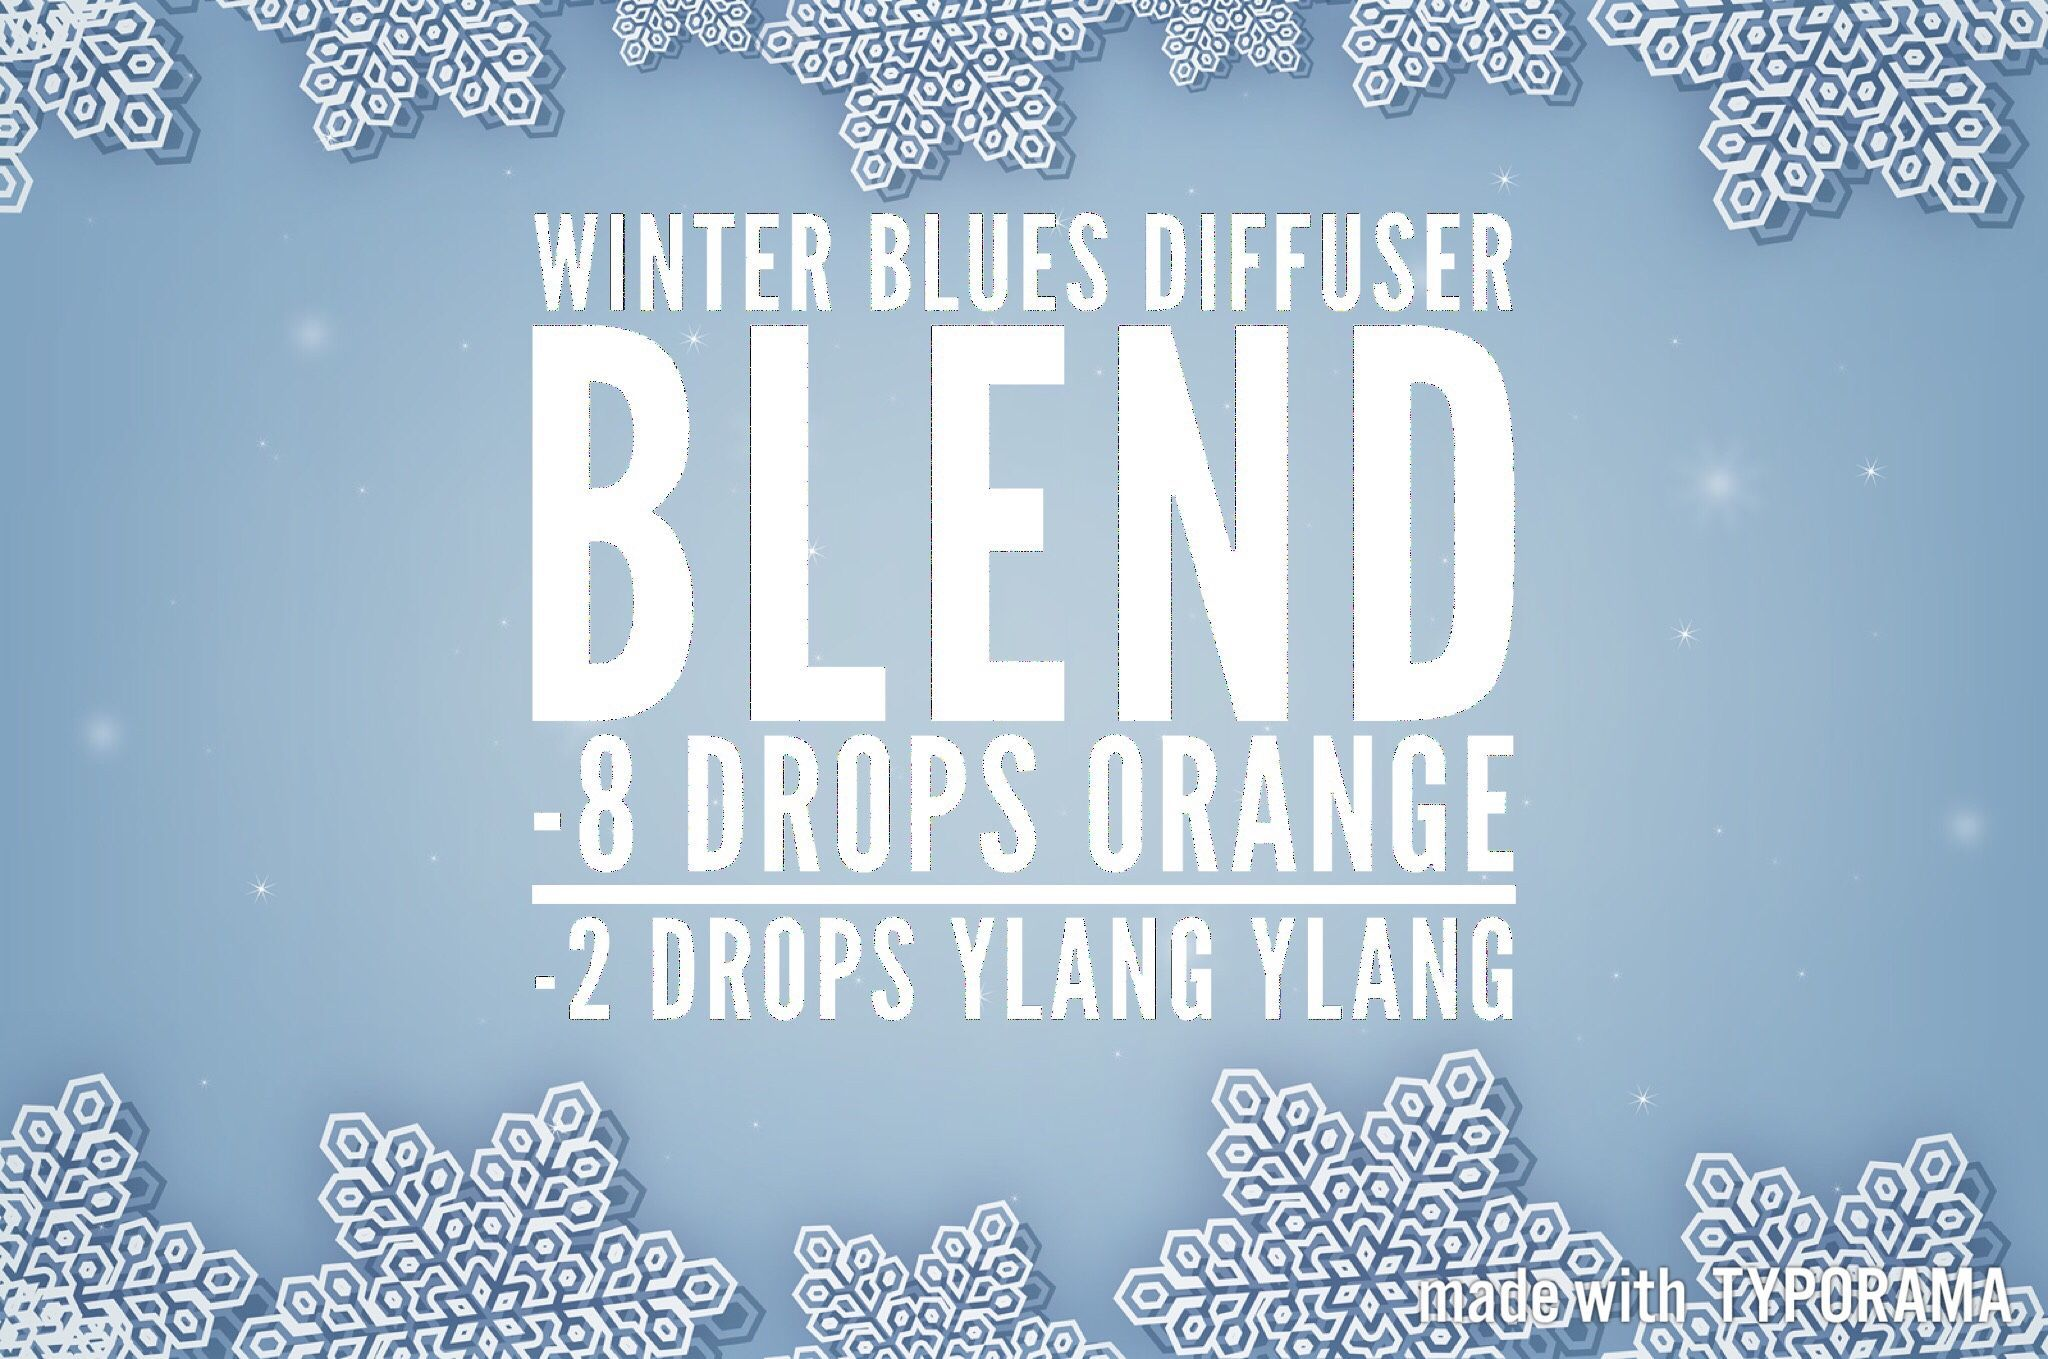 Winter Blues Diffuser Blend – Traveling Hippies #winterdiffuserblends Winter Blues Diffuser Blend – Traveling Hippies #winterdiffuserblends